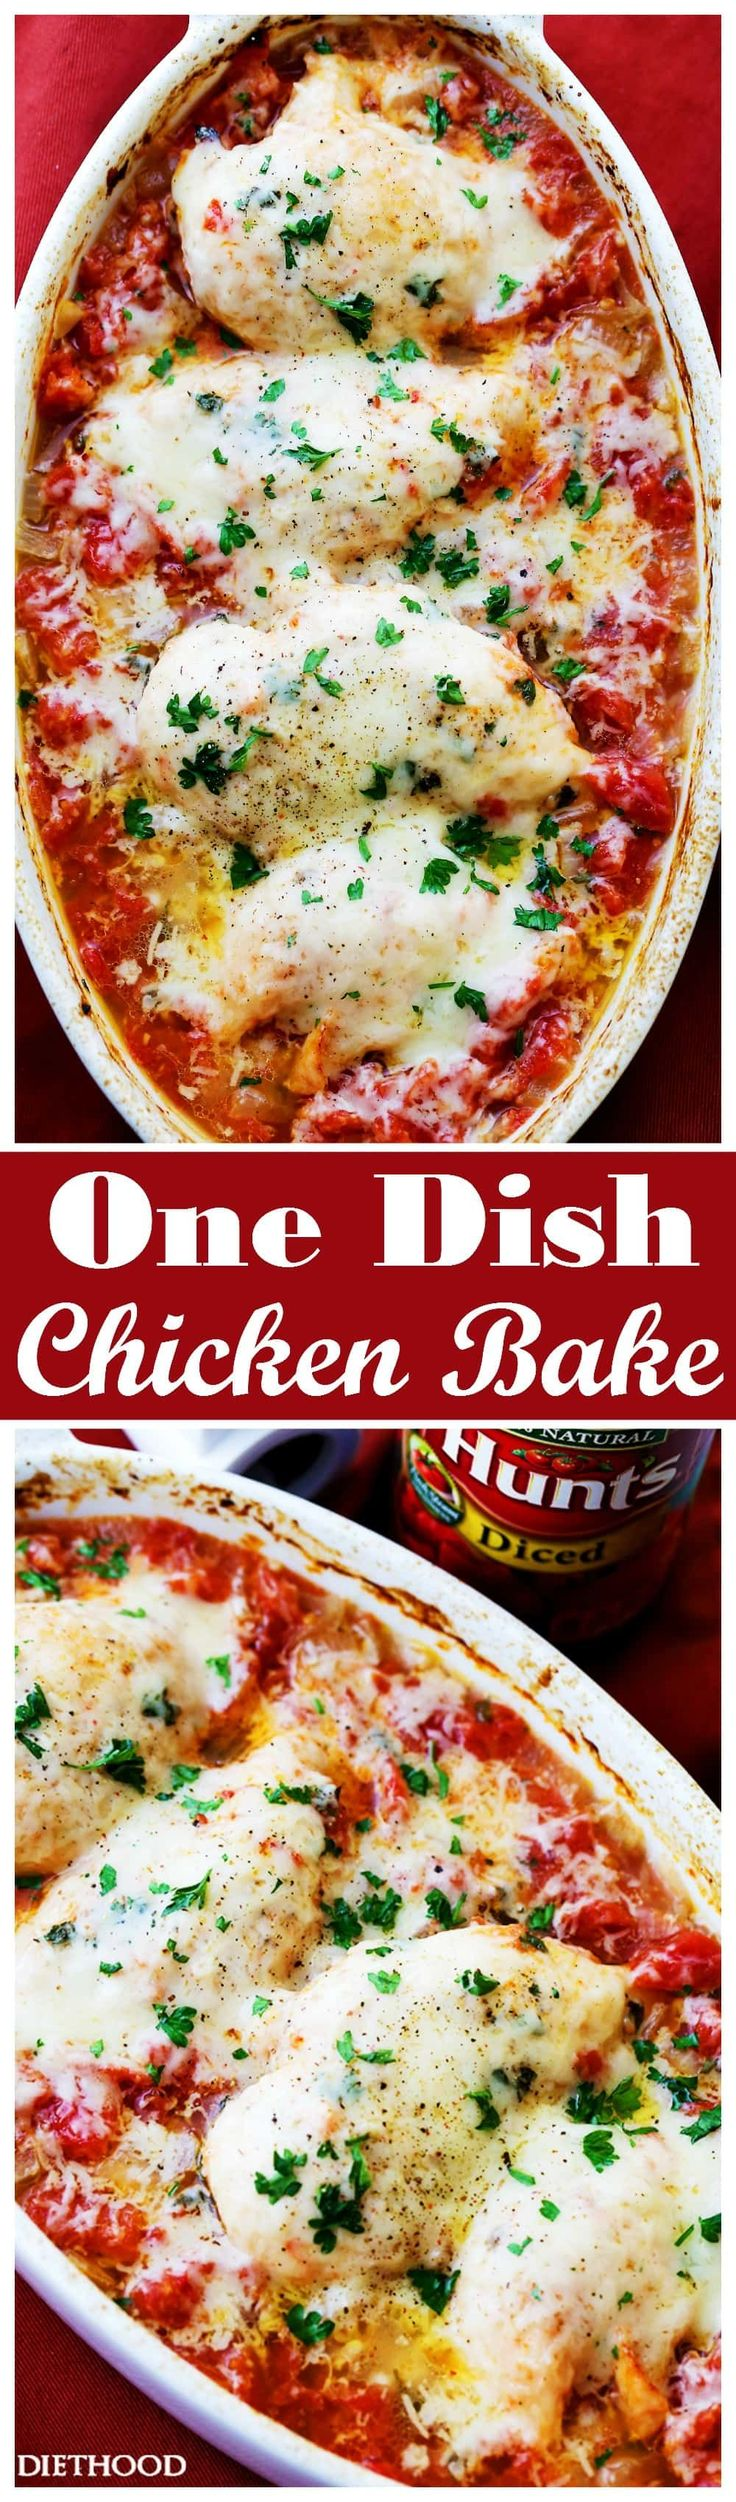 One Dish Chicken Bake Recipe- Flavorful chicken baked on a bed of tomatoes and covered in cheese makesfor a one-dishdinner the whole family will enjoy.